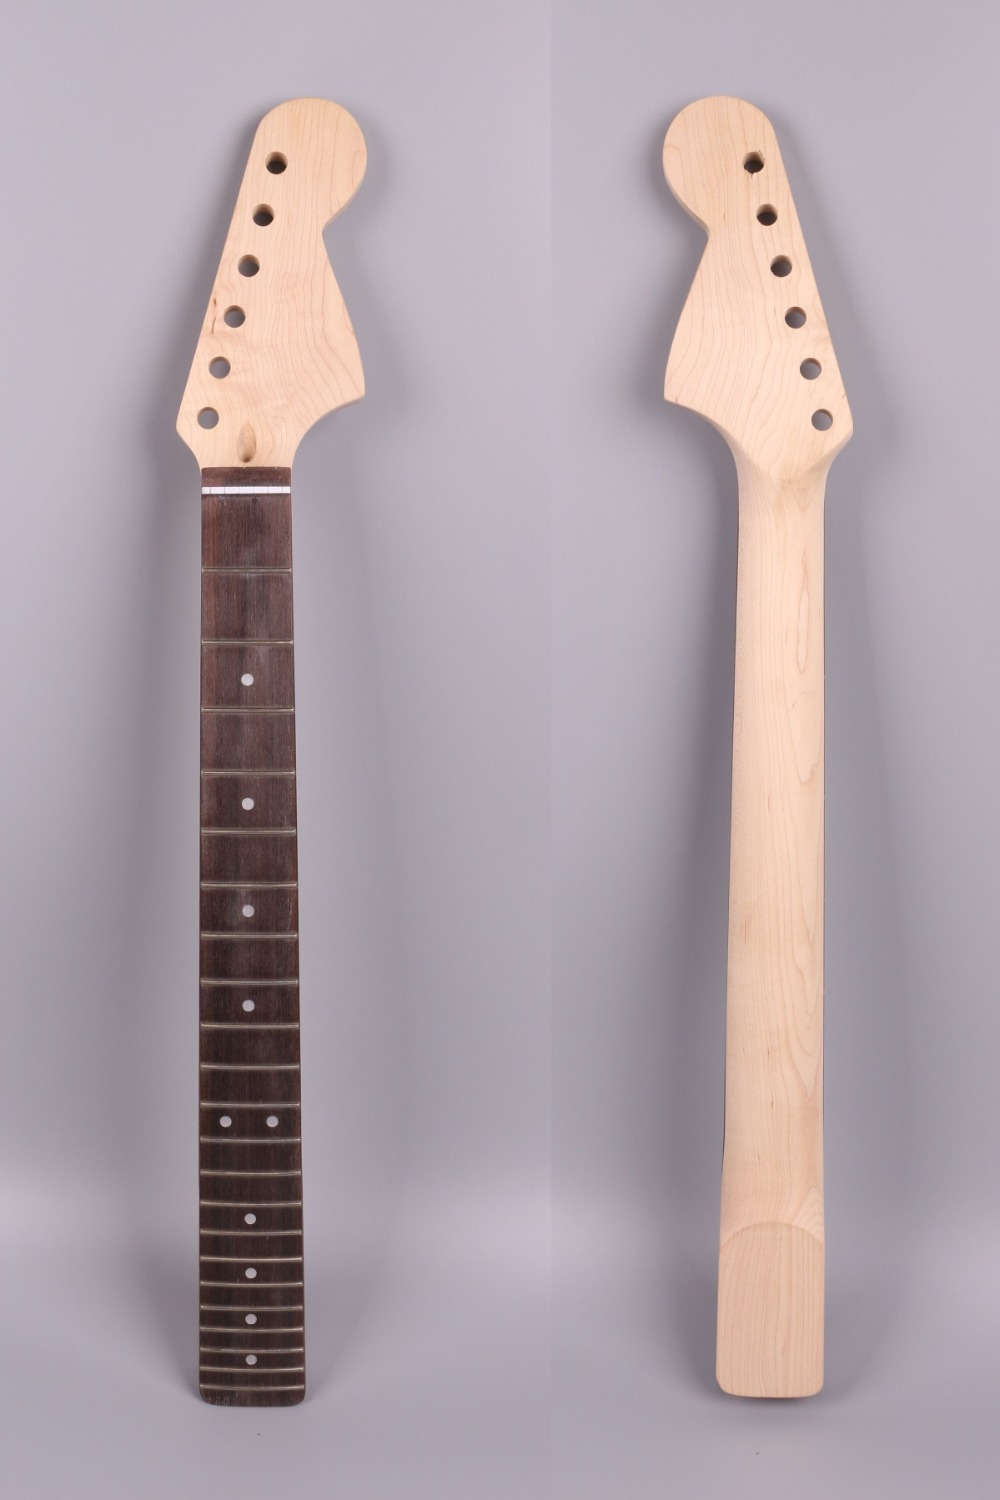 Yinfente Strat electric guitar neck replacement 22 fret rosewood fretboard Dot inlay 25.5 inch Maple Neck #S2 left hand electric bass guitar neck 21 fret 34 inch maple wood rosewood fretboard 719